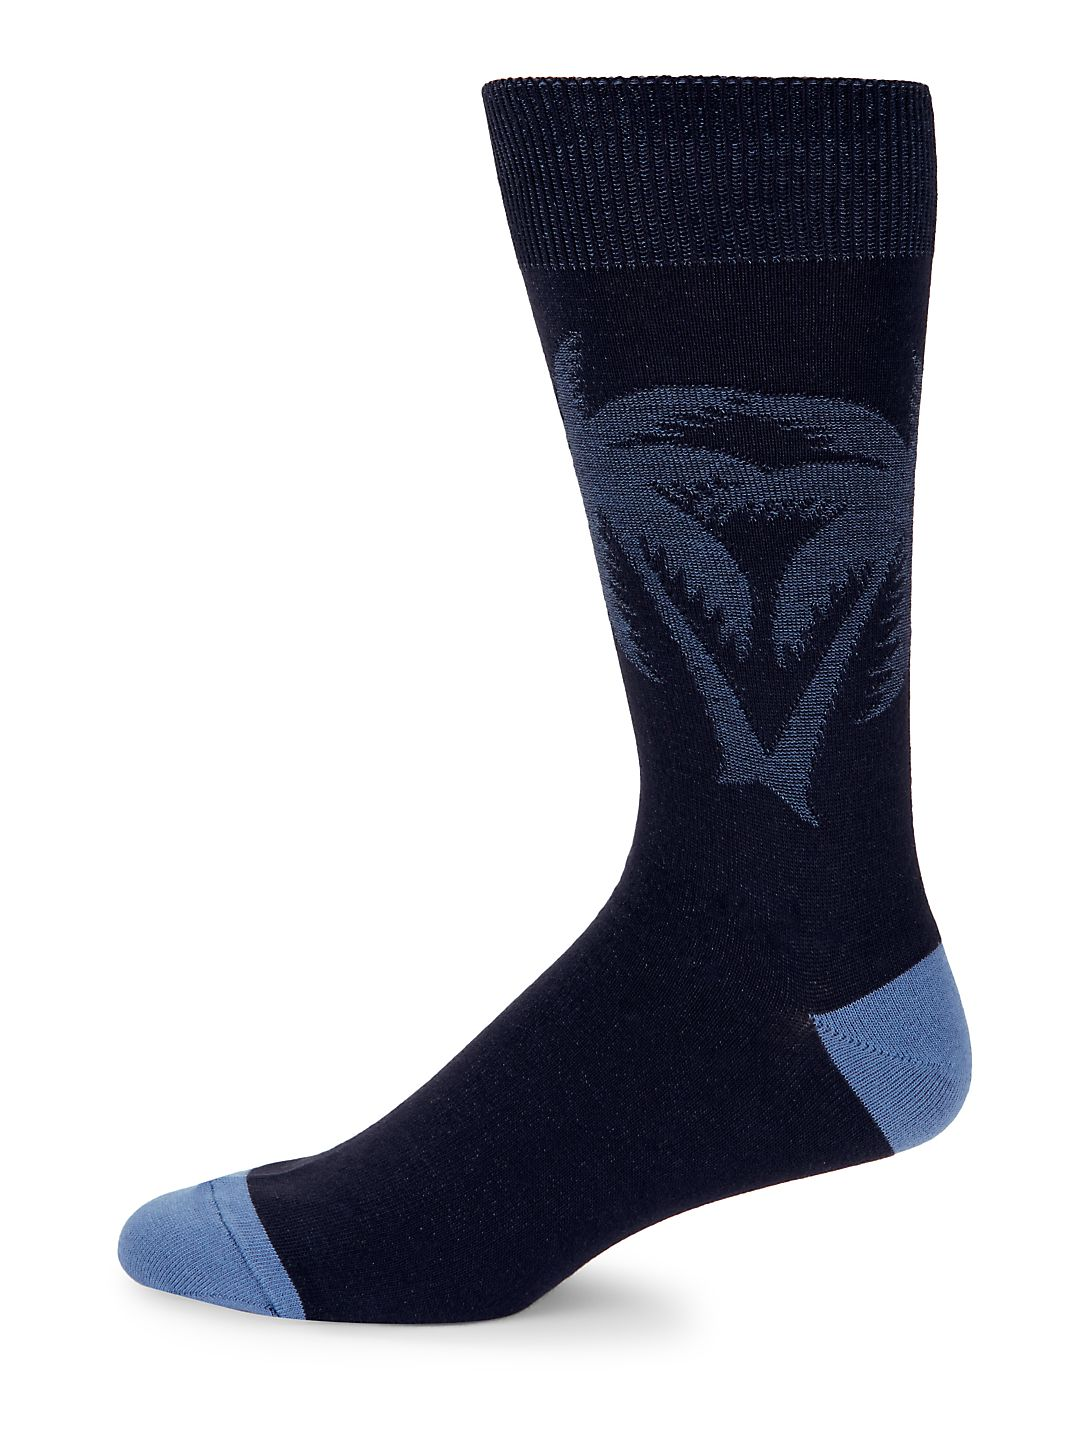 Palm-Print Textured Crew Socks